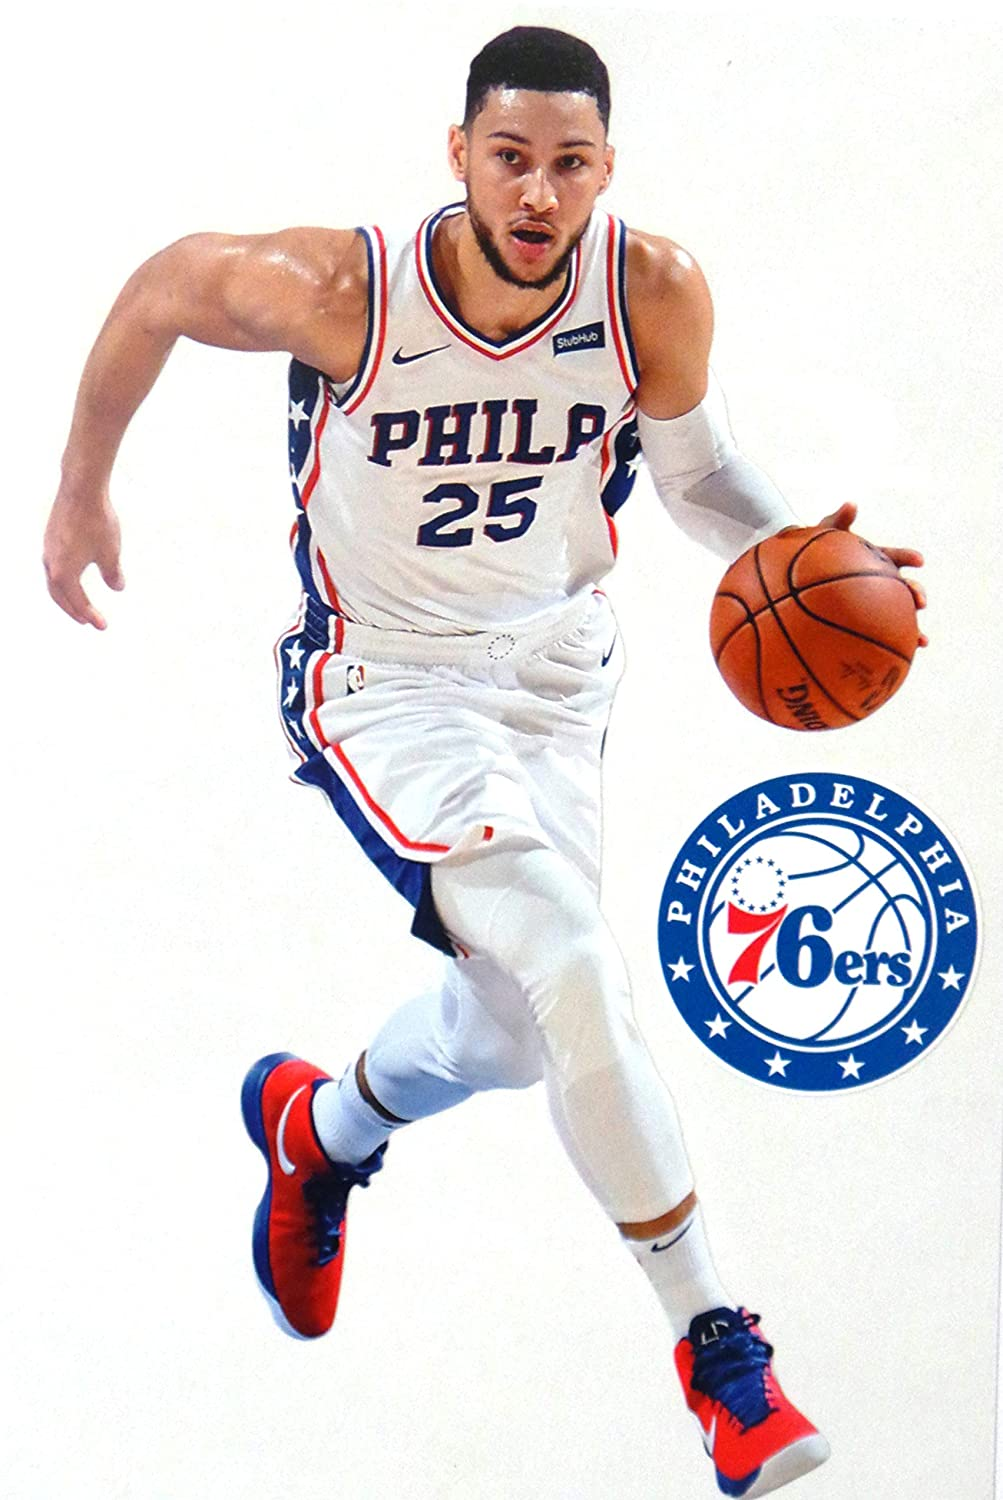 FATHEAD Ben Simmons Mini Graphic + Philadelphia 76ers Logo Official NBA Vinyl Wall Graphics - This Player Decal is 7